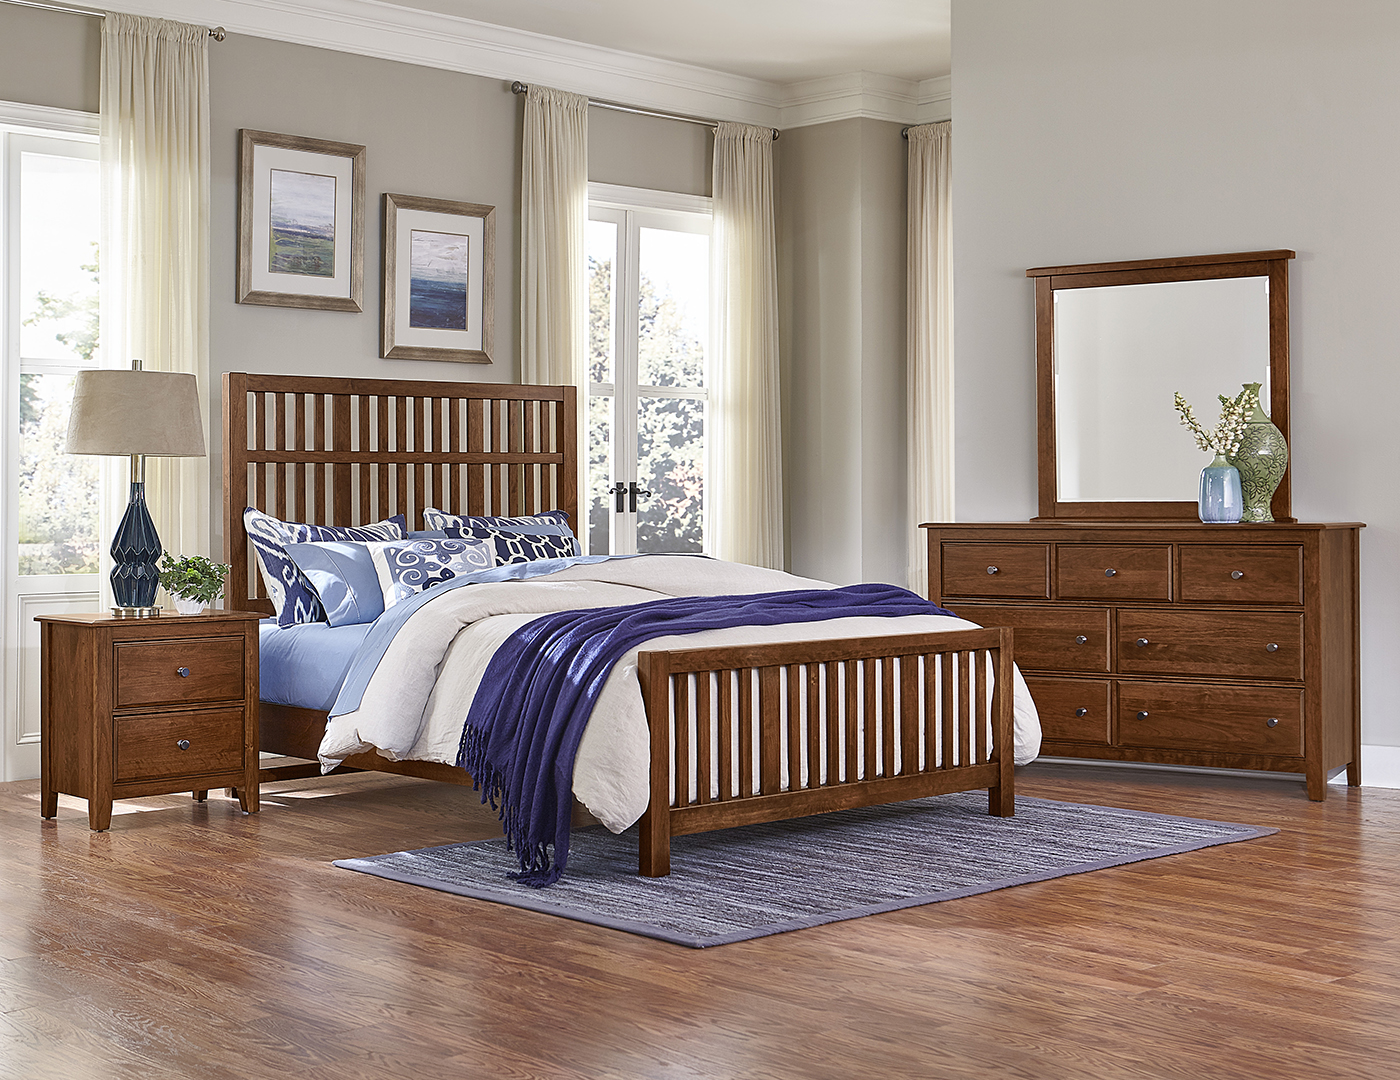 Artisan Choices Queen Craftsman Bed